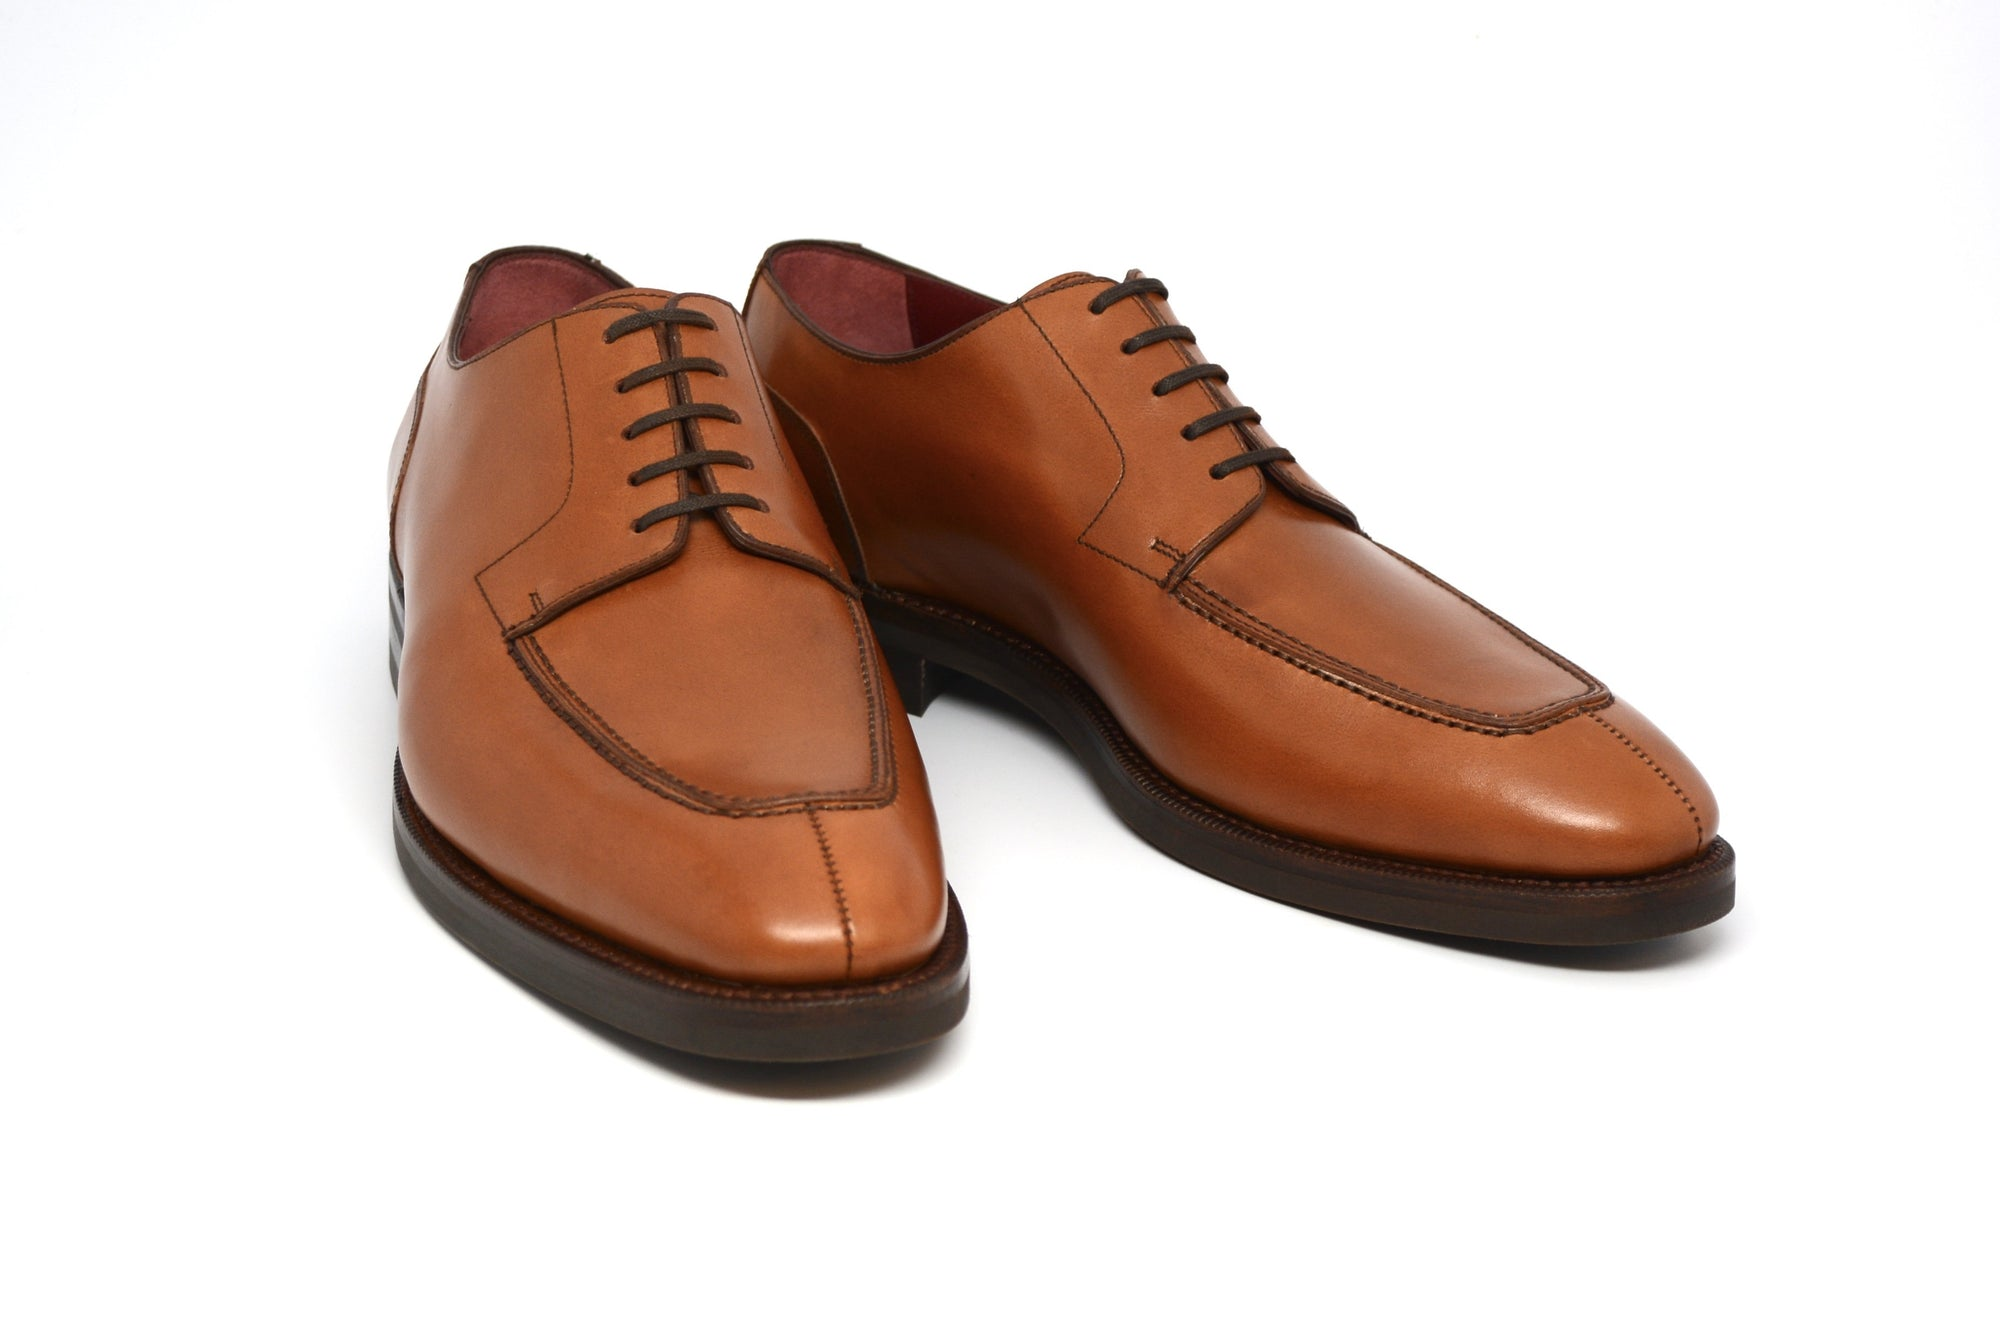 NORWEGIAN - COGNAC CALF - 888